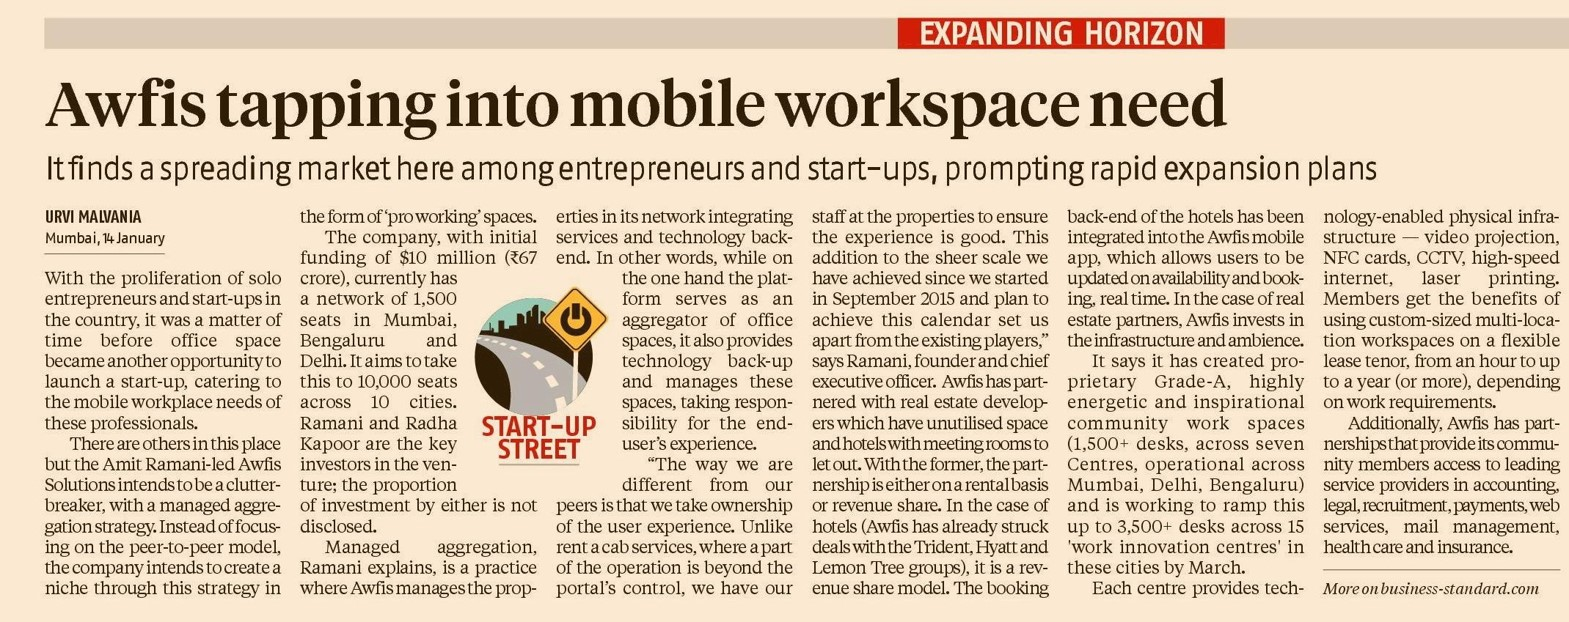 Awfis tapping into mobile workspace need